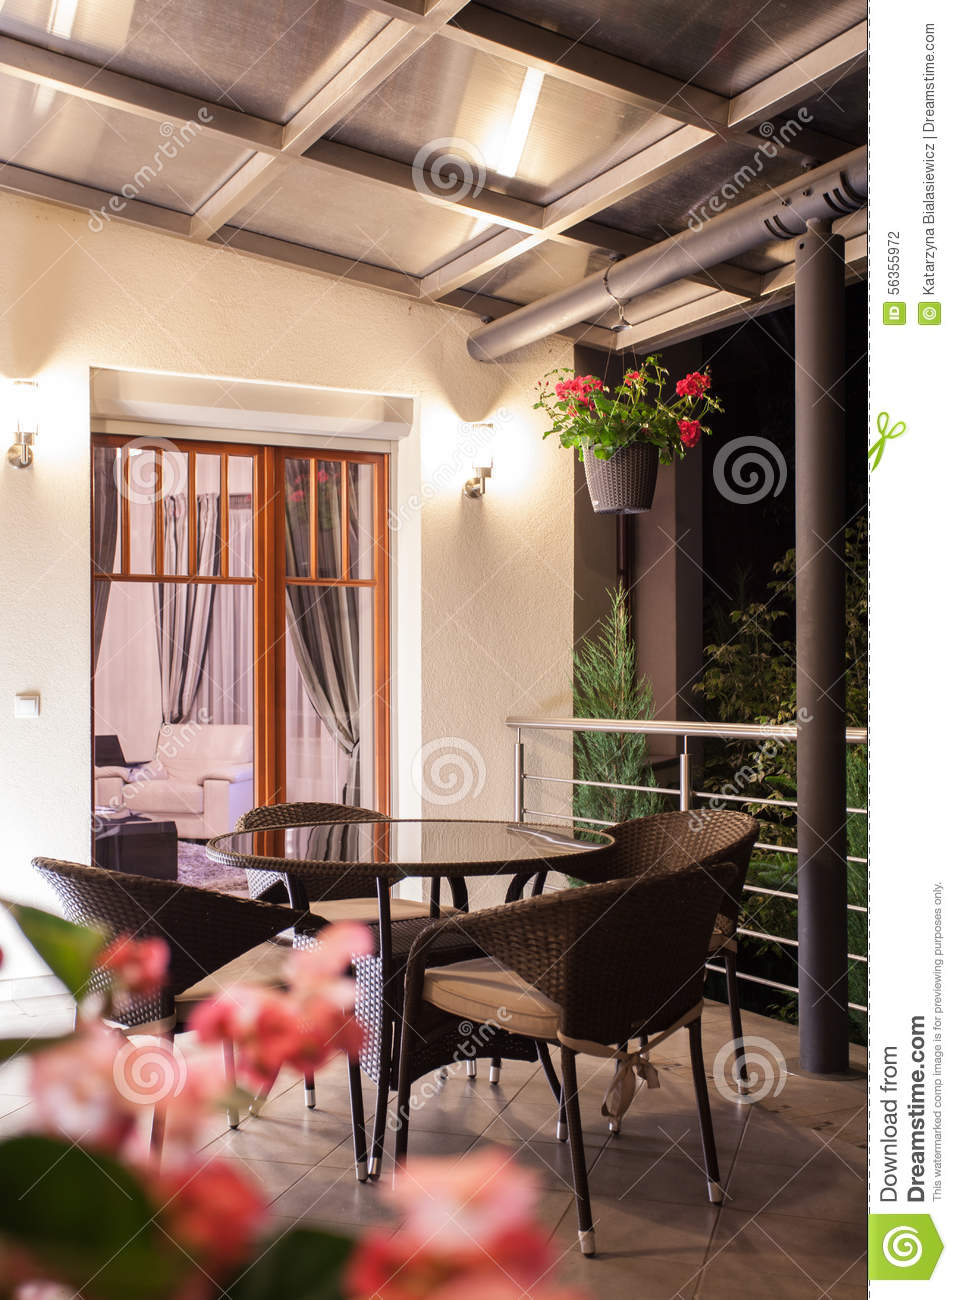 Table Ronde Balcon Table Ronde Sur Le Balcon Romantique Photo Stock Image Du